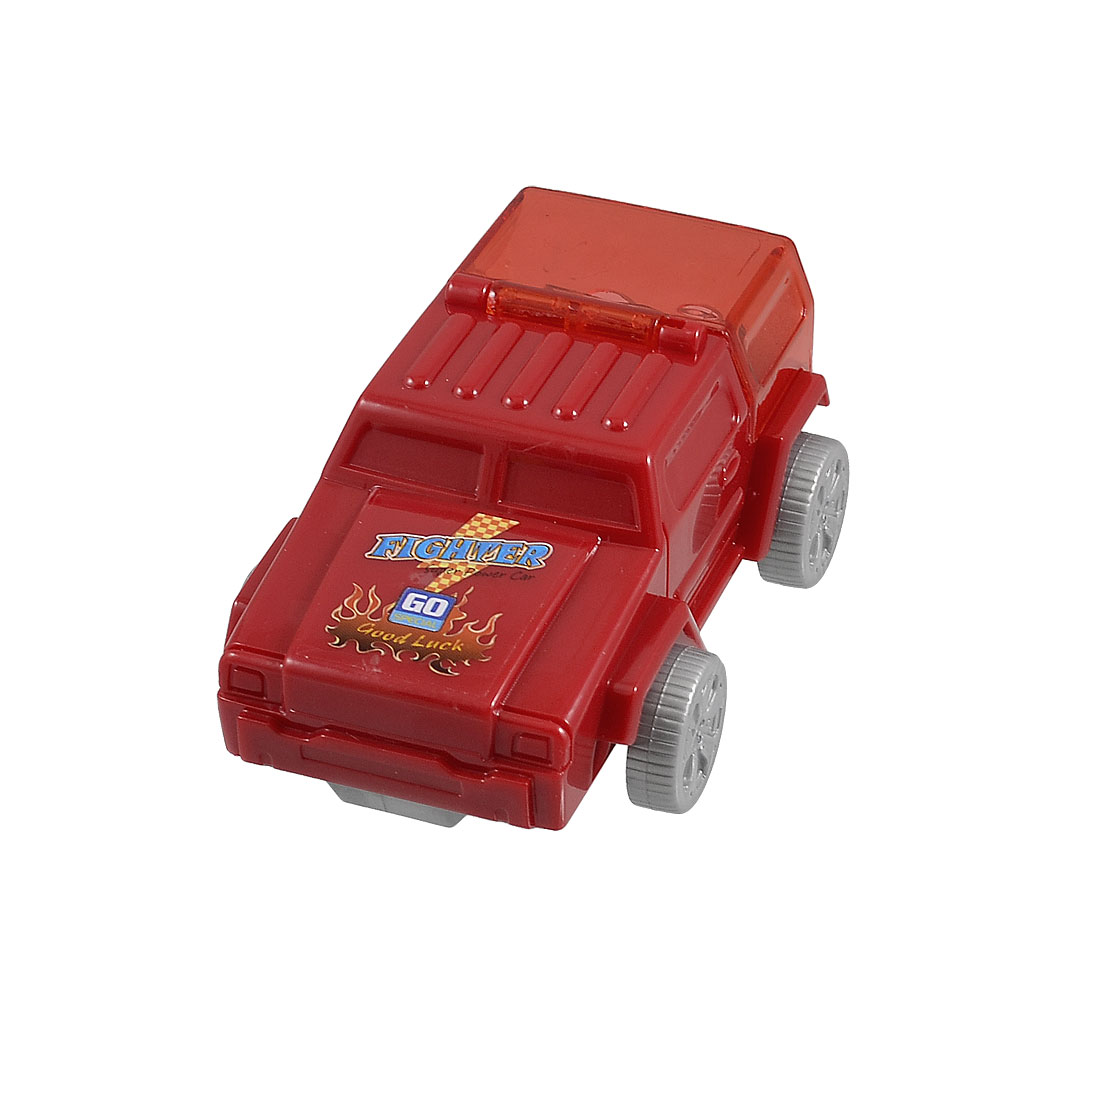 Red Plastic Jeep Car Shaped Double Hole Style Pencil Sharpener